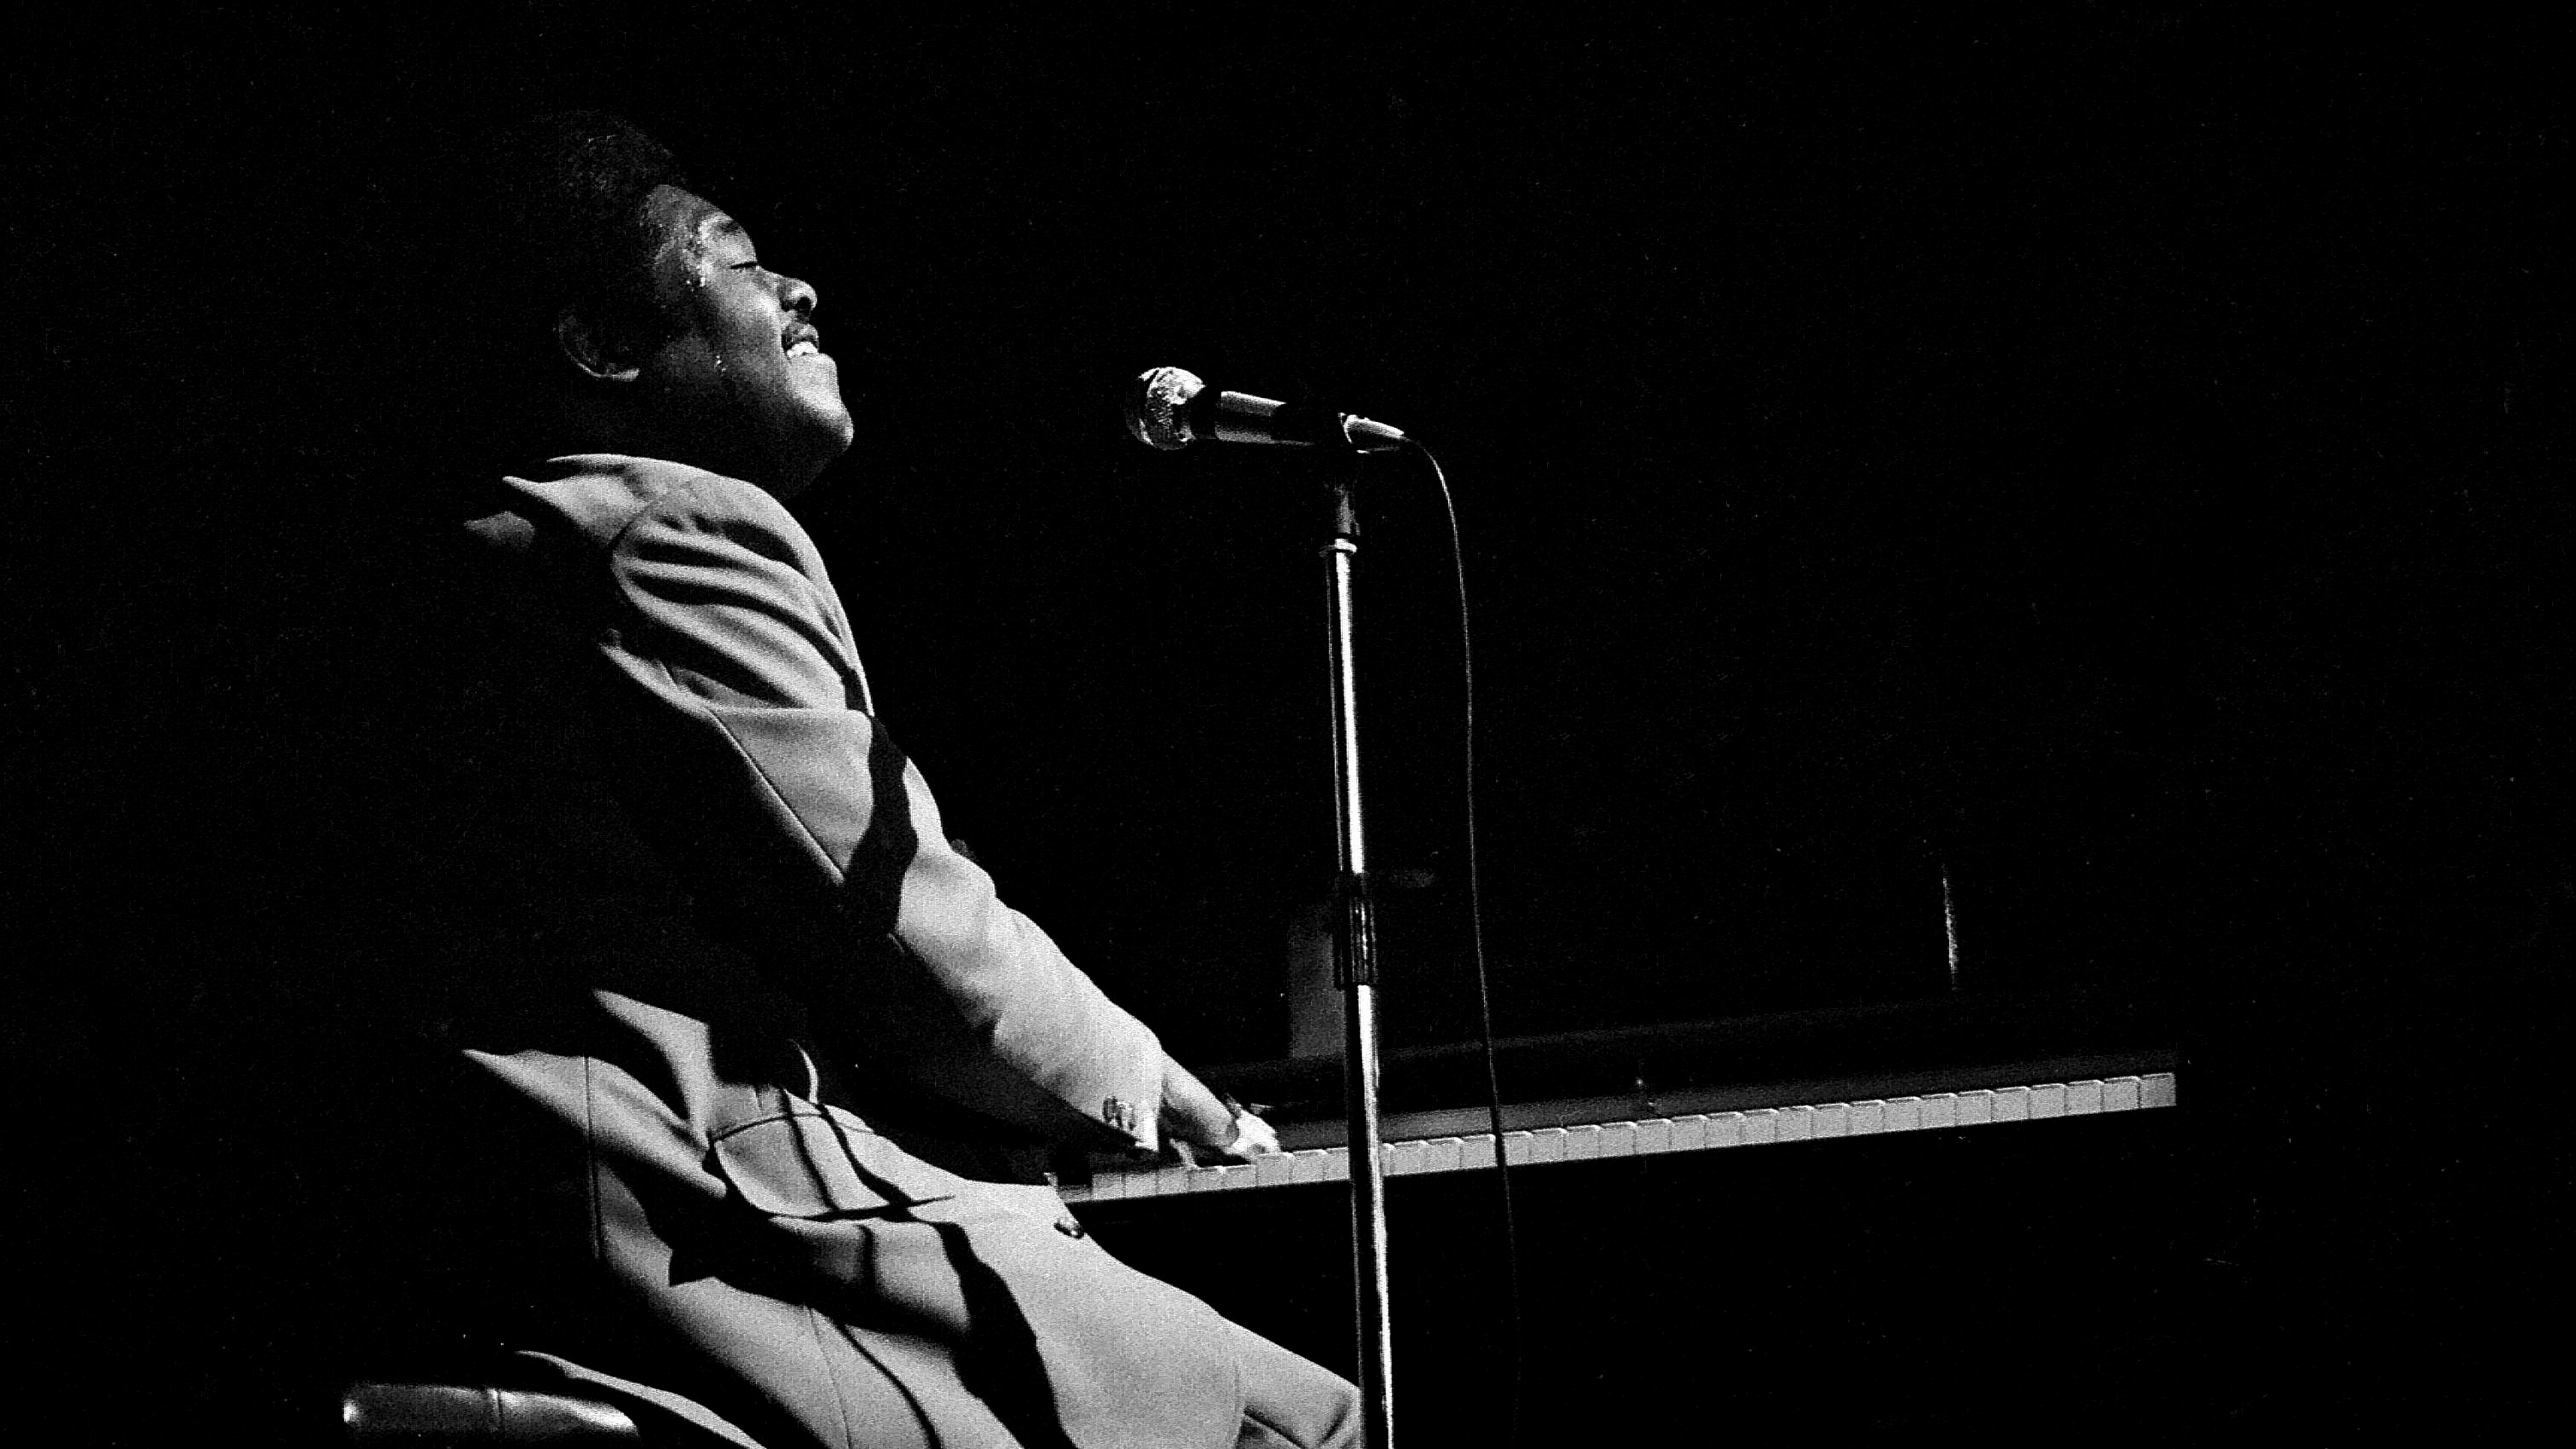 Fats Domino, American pianist, singer and conducto